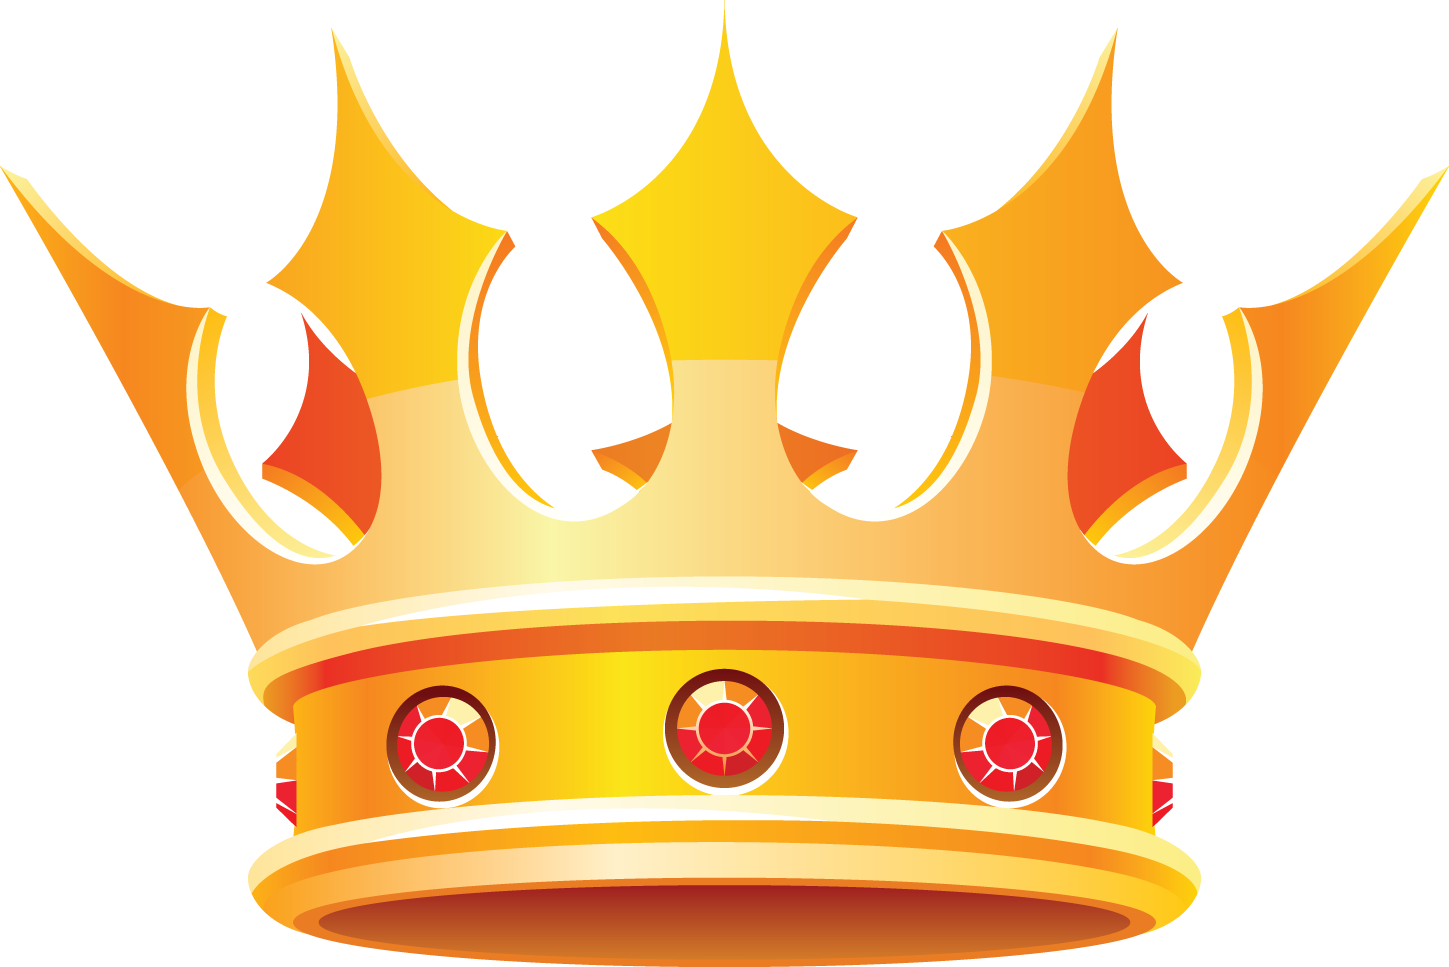 Clipart crown transparent royalty free stock Queen Crown Clipart at GetDrawings.com | Free for personal use Queen ... royalty free stock